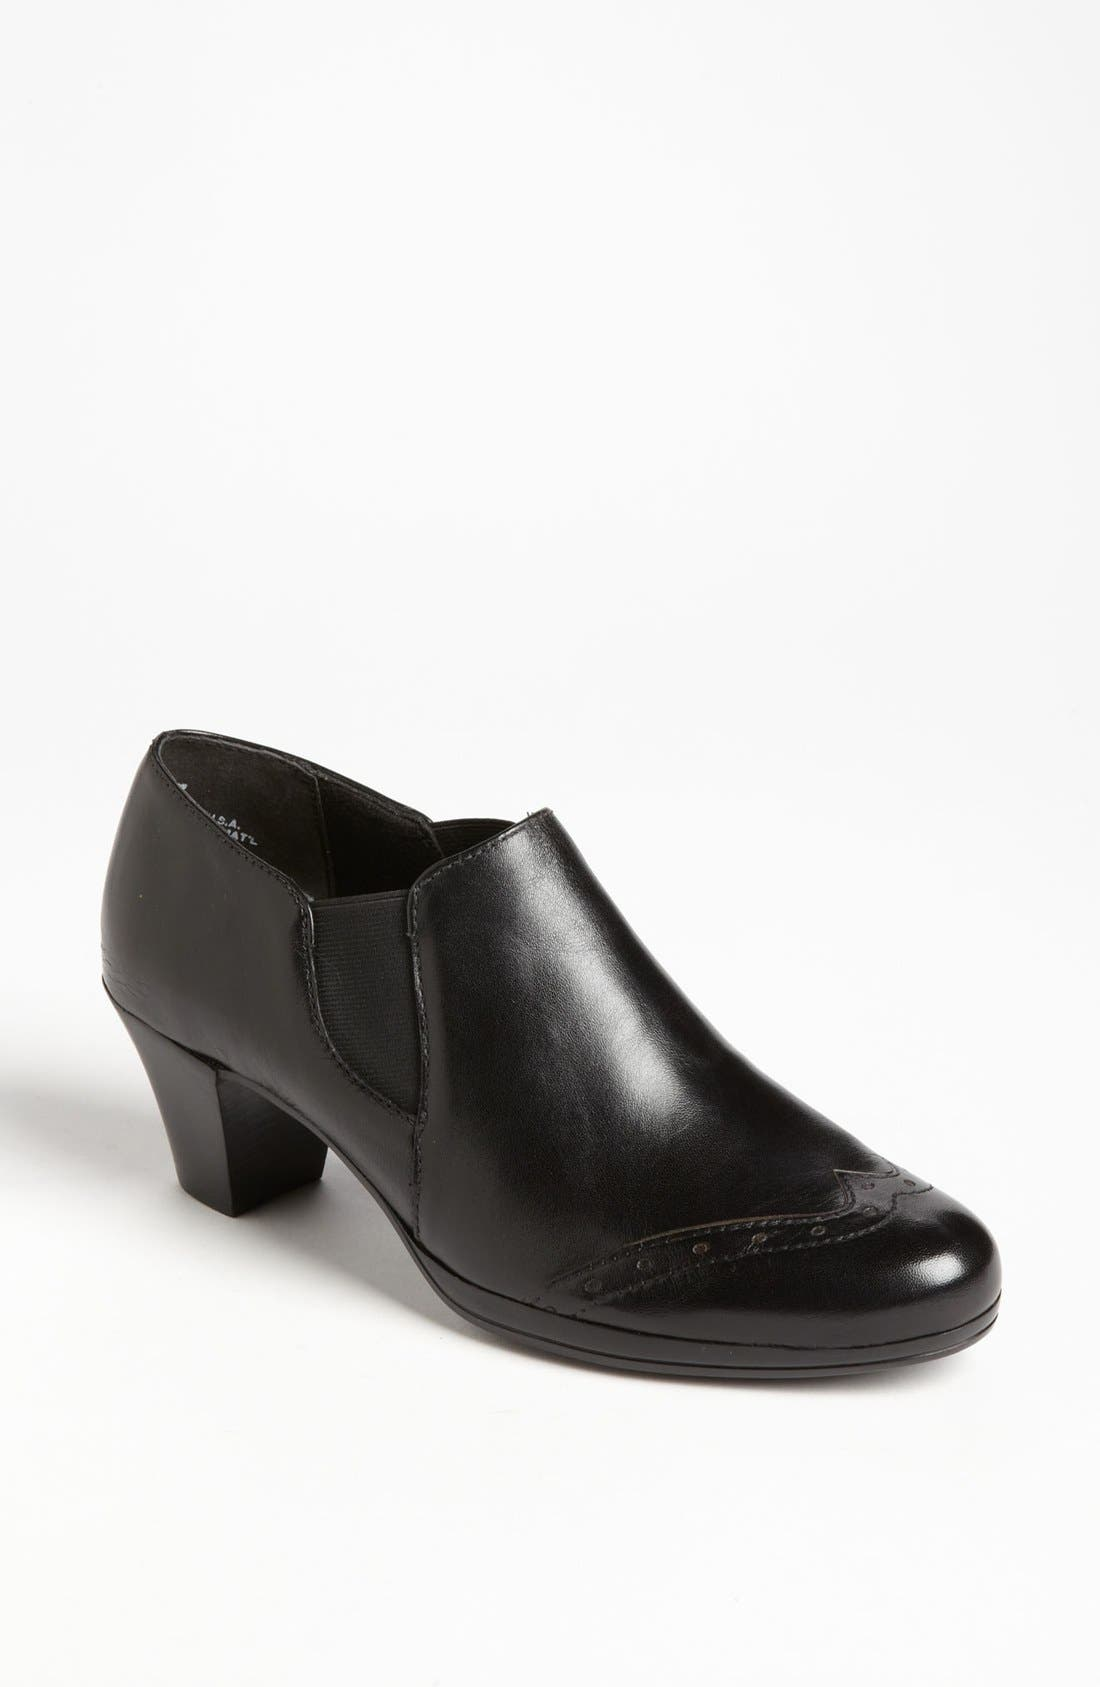 Main Image - Munro 'Betsy' Bootie